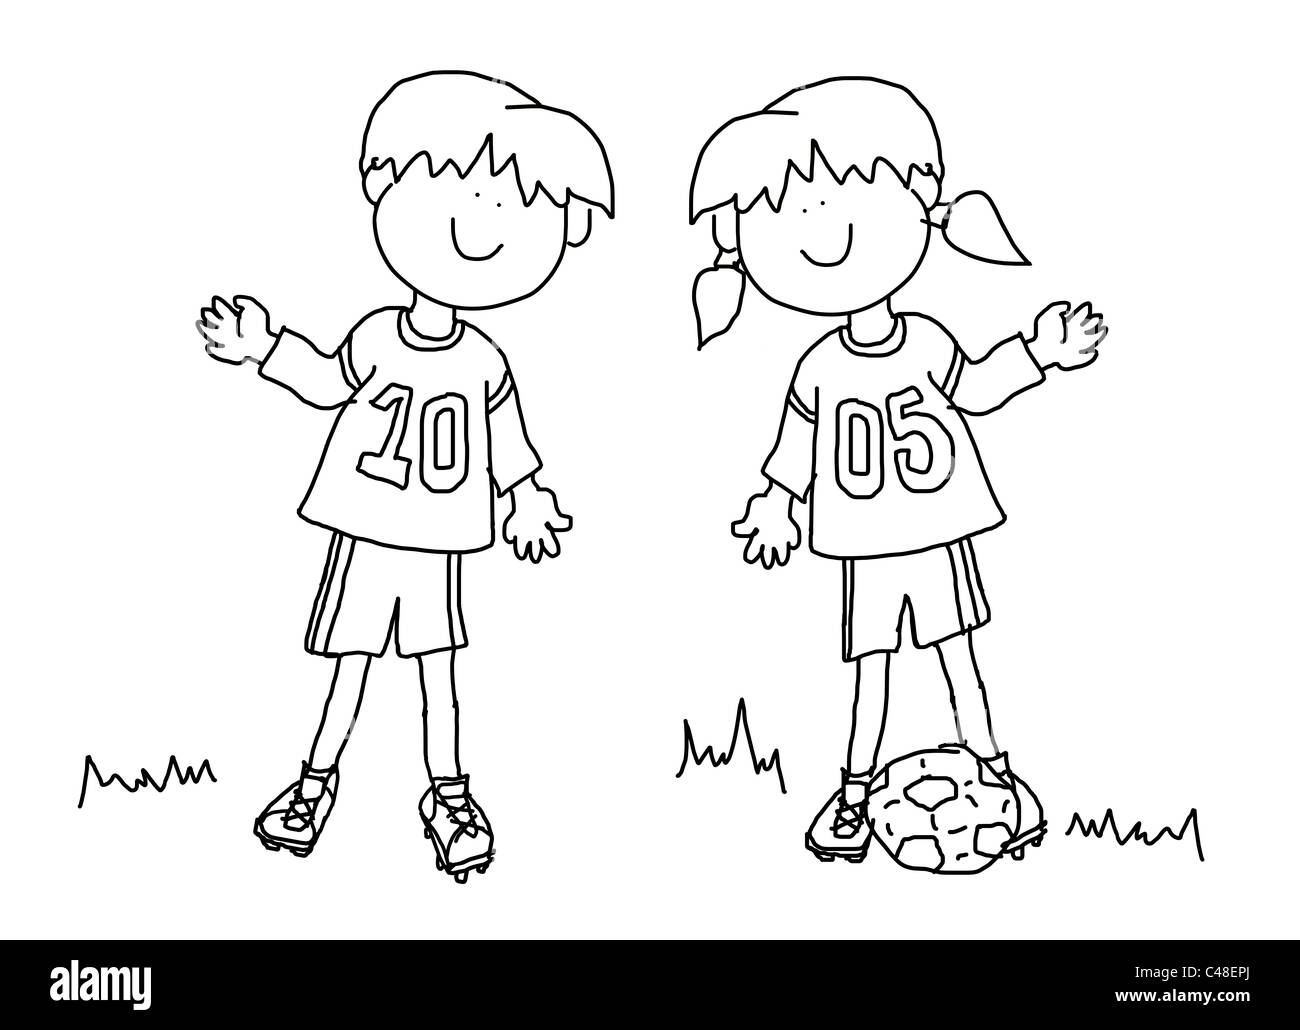 Fun Boy And Girl Cartoon Outline Playing Soccer Or Football In Their Team Uniform Large Format